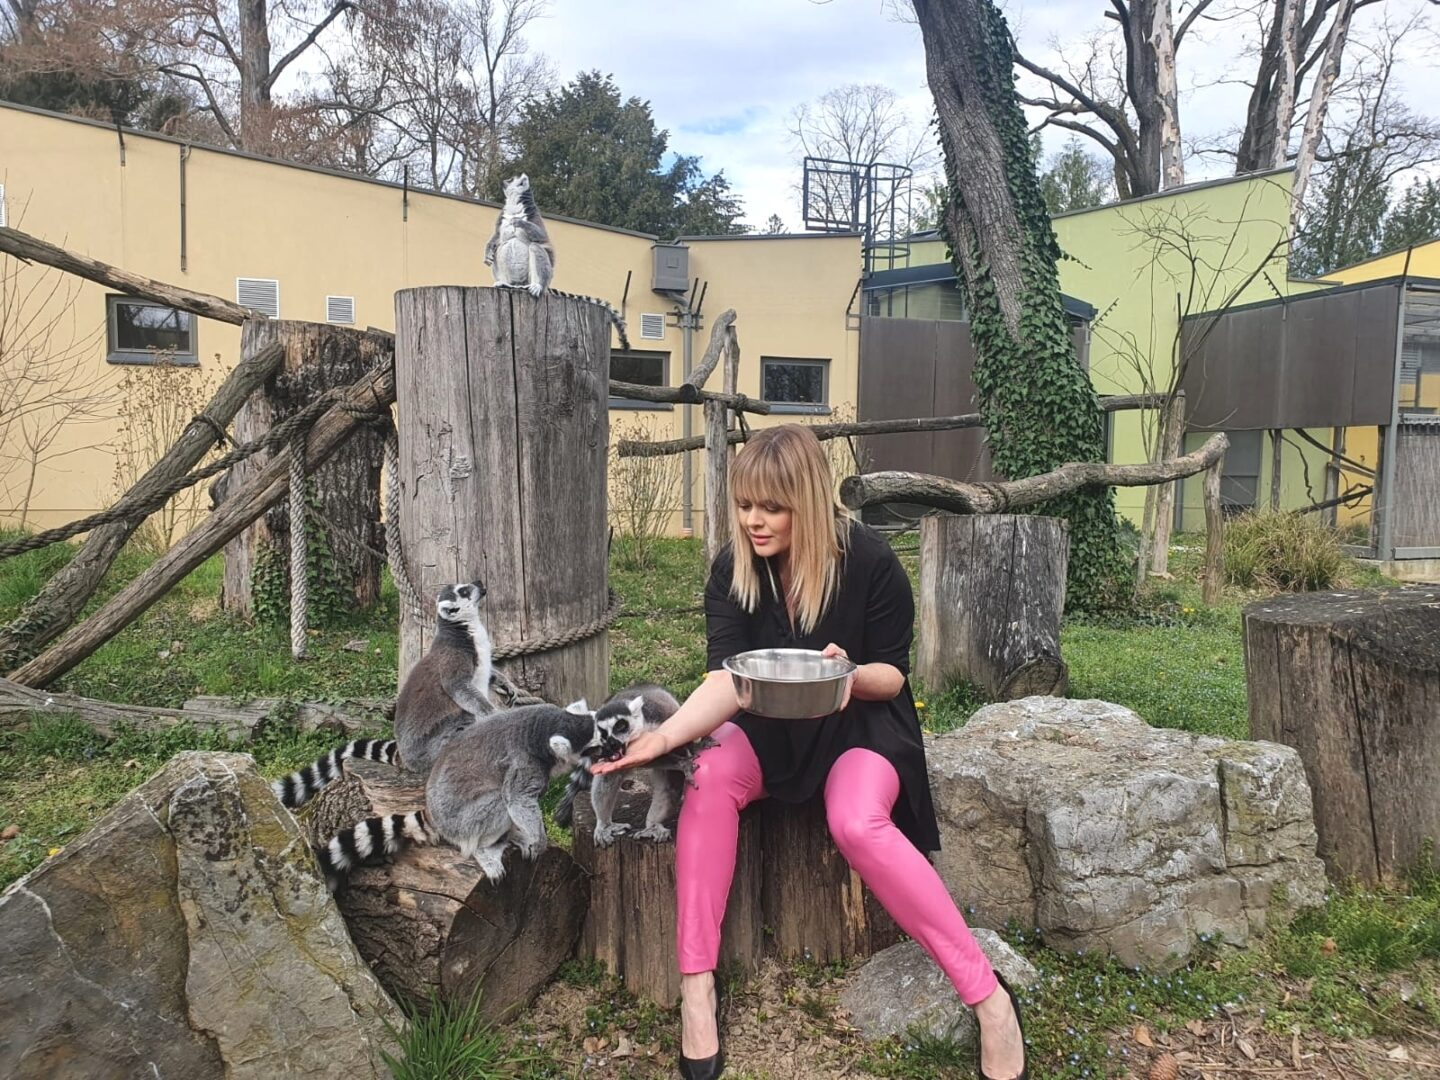 Zagreb Zoo gets its own anthem 'Zoo Song'